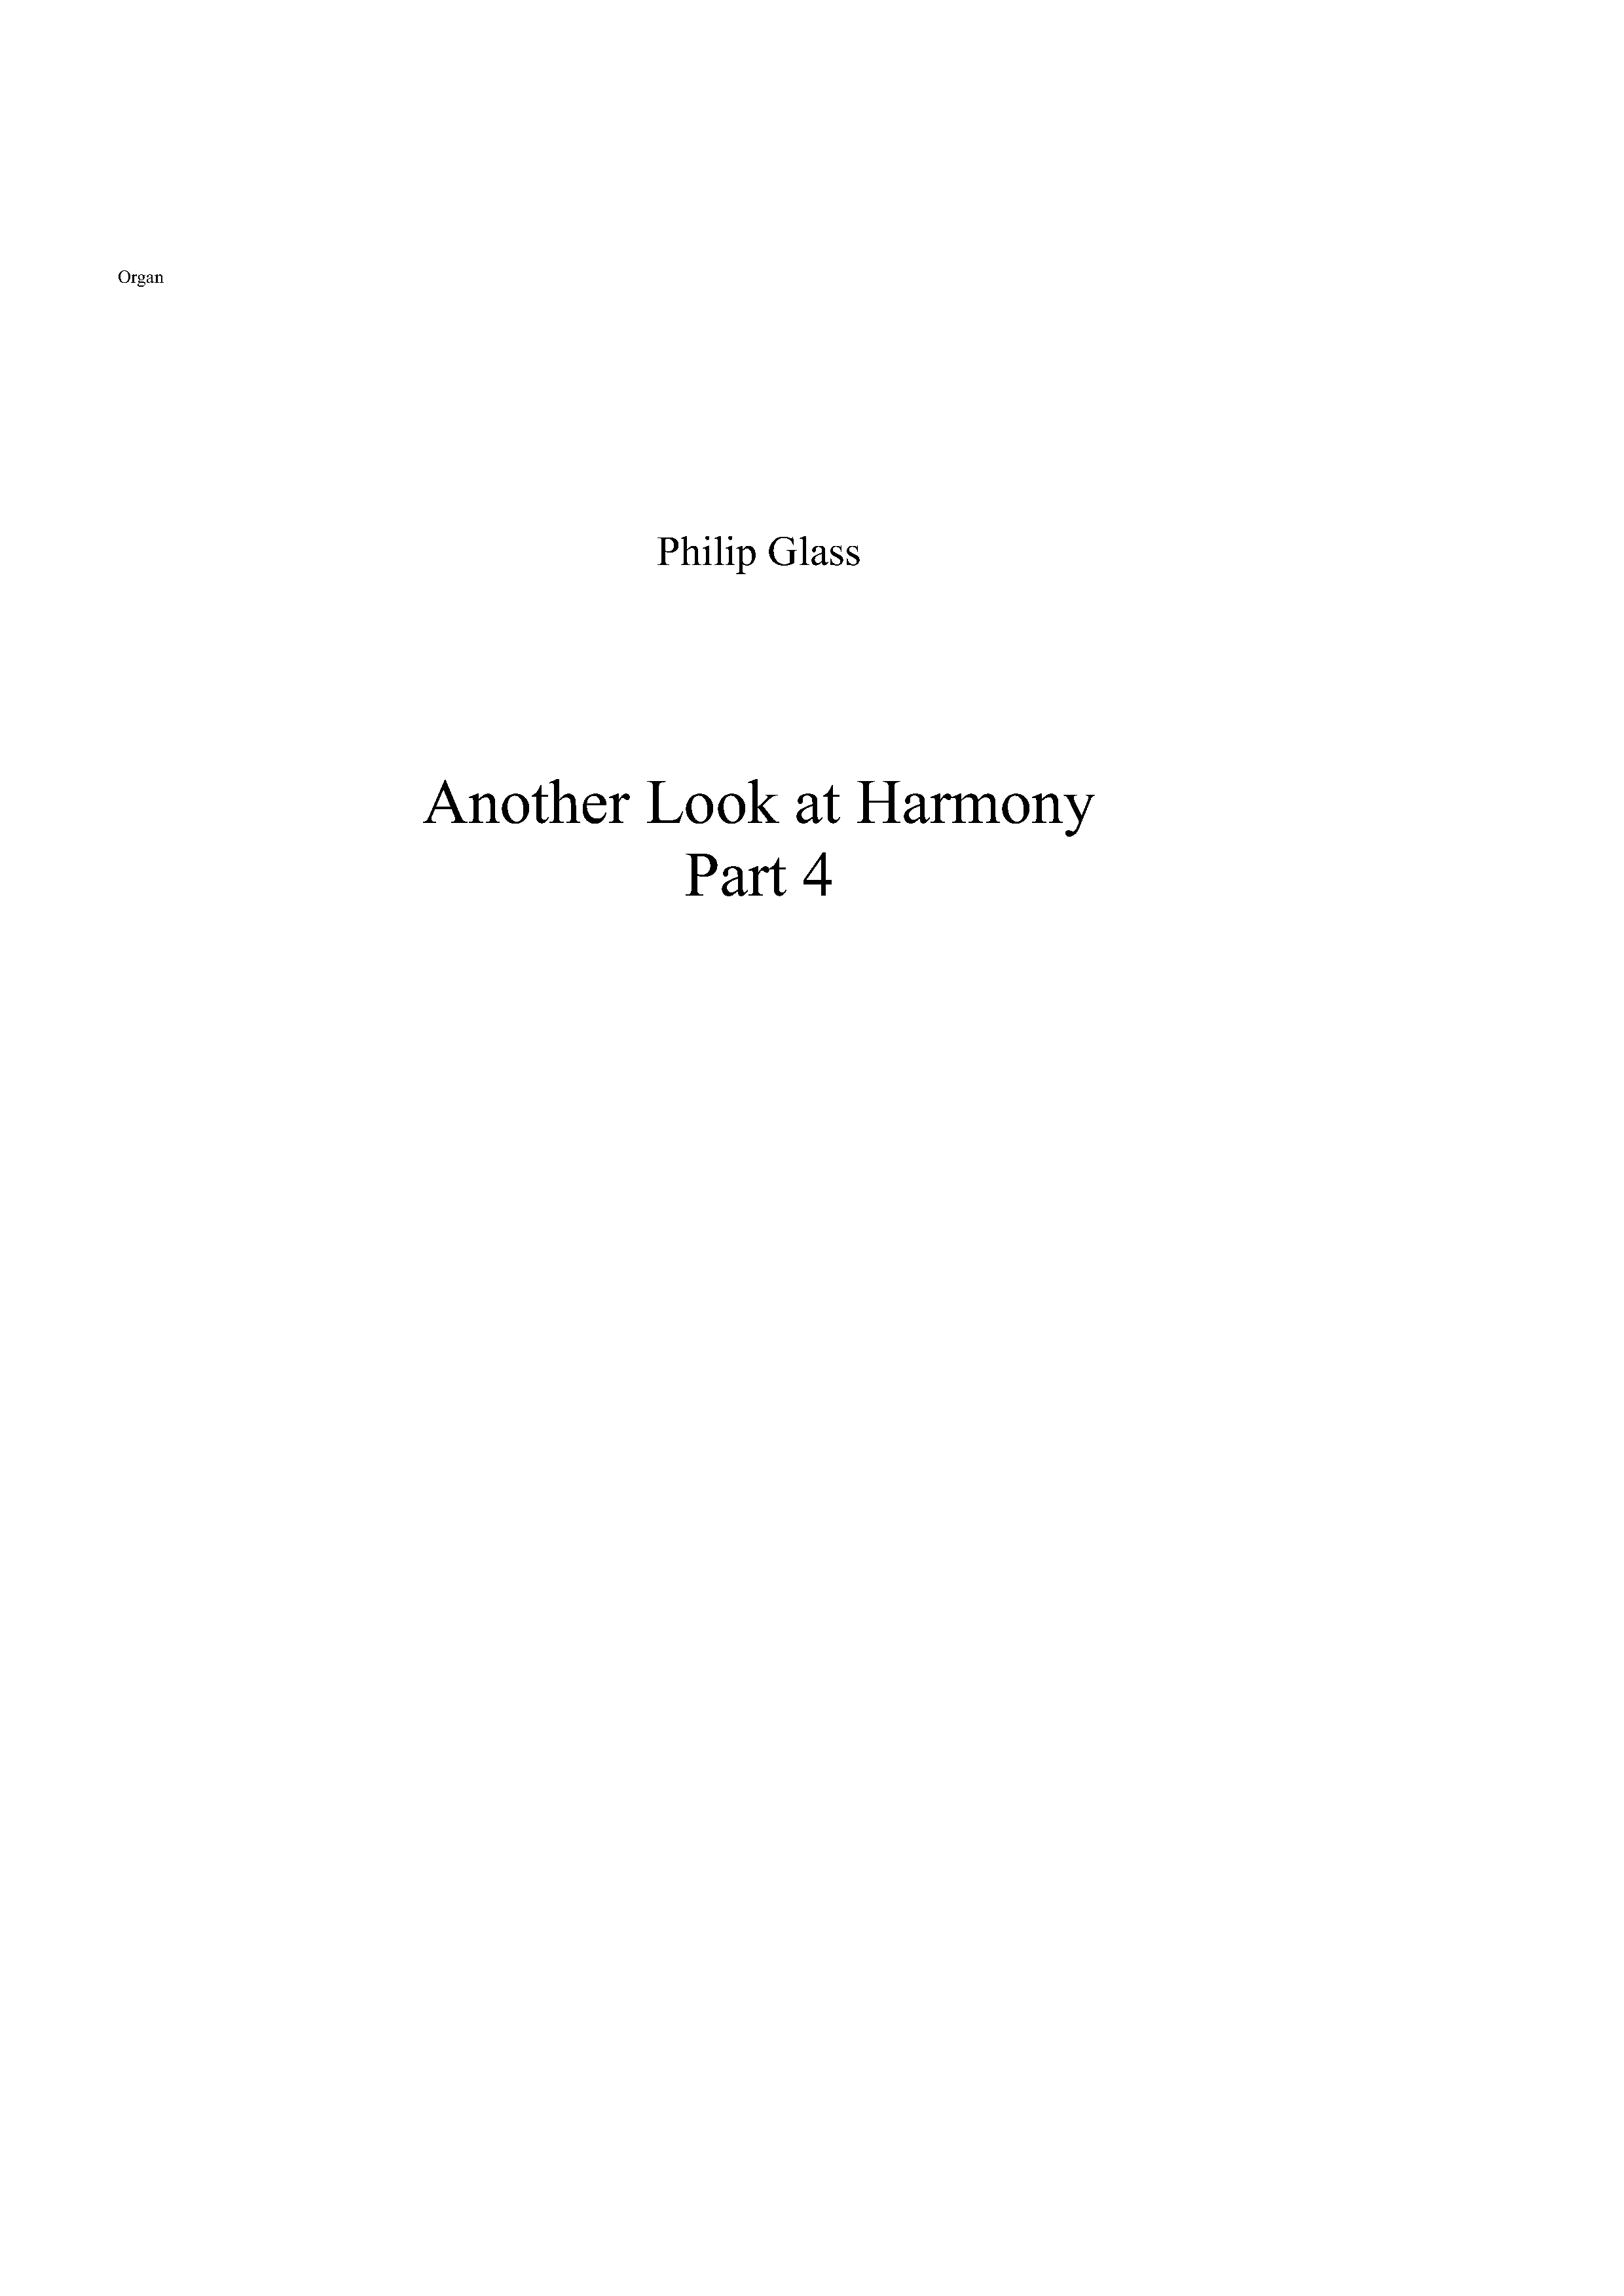 Philip Glass: Another Look at Harmony - Part 4: Organ: Part